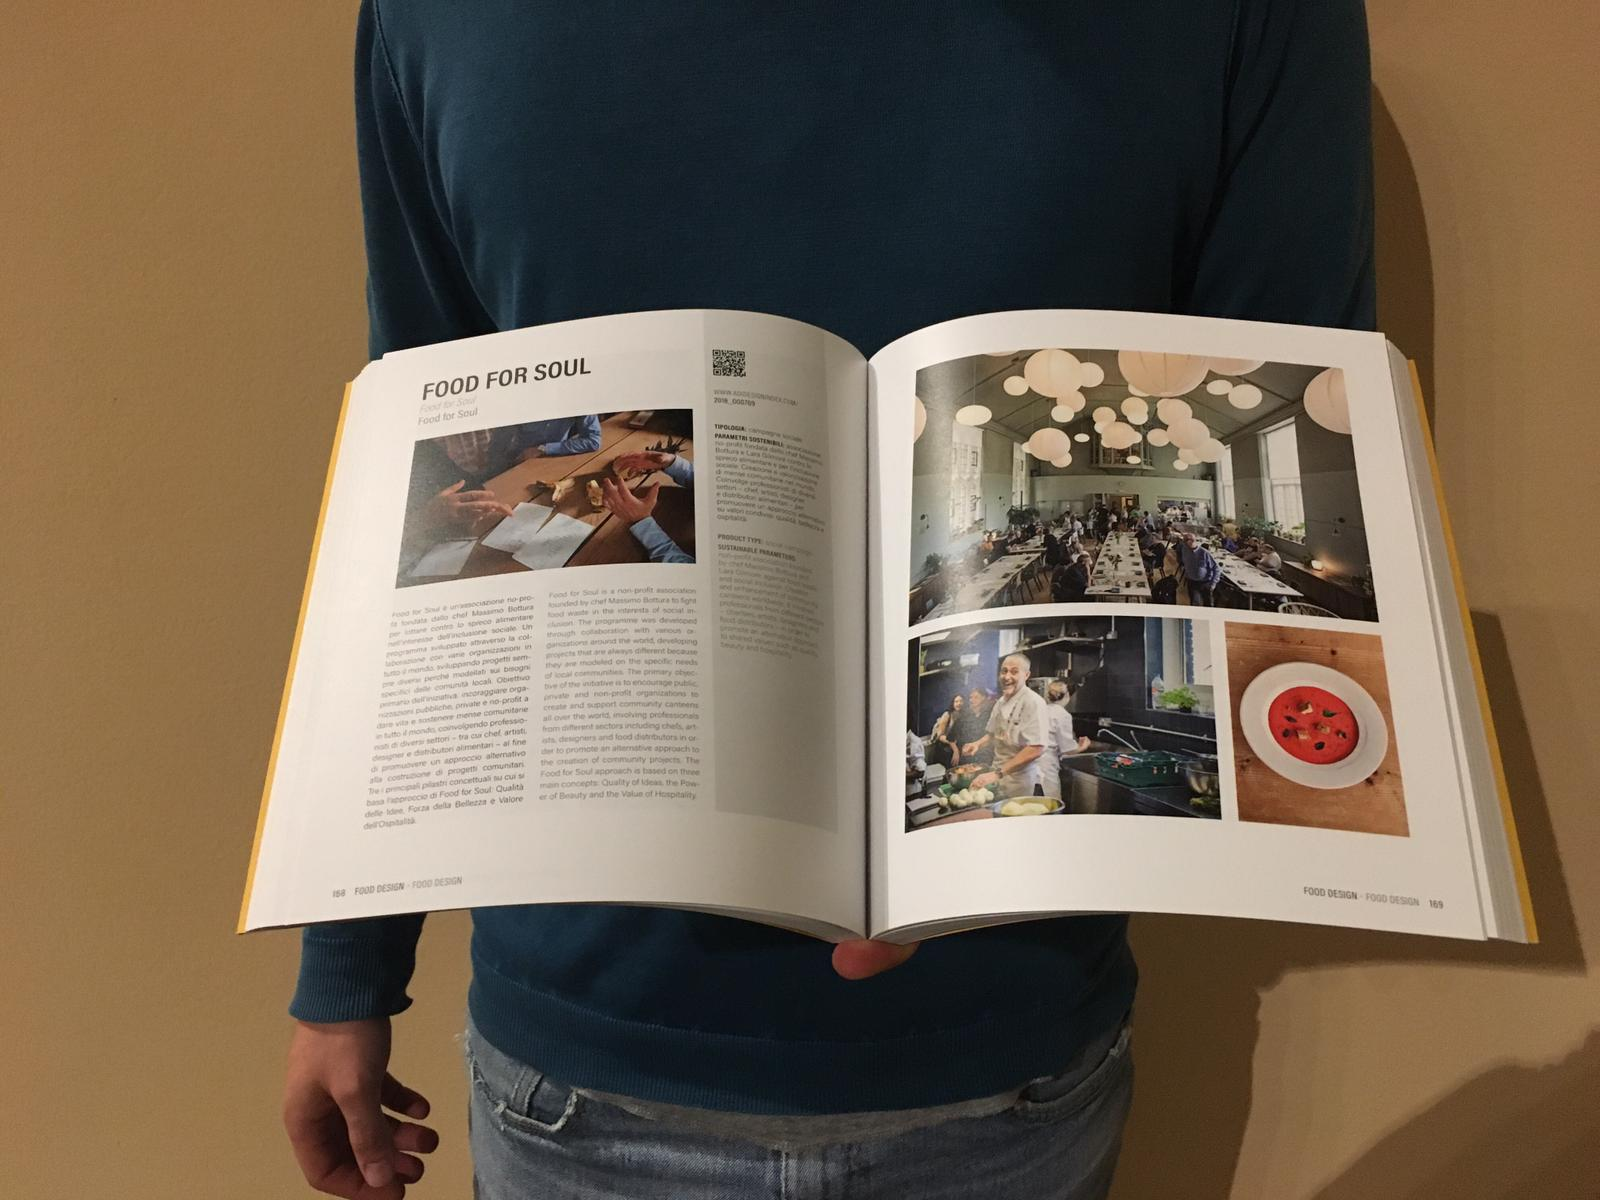 Food for Soul has officially been included in the ADI Design Index